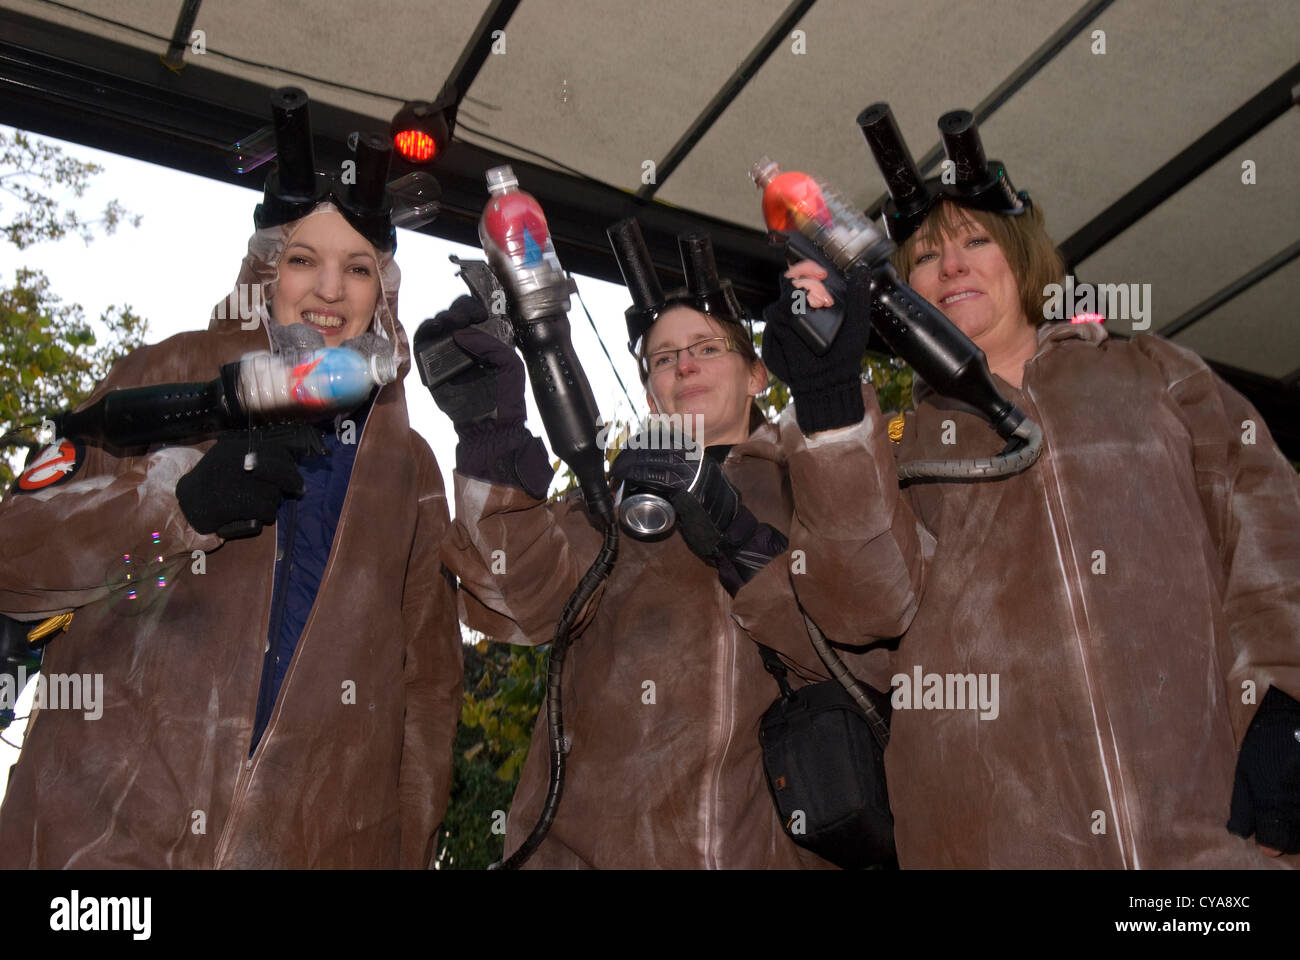 Carnival goers dressed as Ghostbusters, Liphook Carnival, Liphook, Hampshire, UK. 27.10.2012 - Stock Image